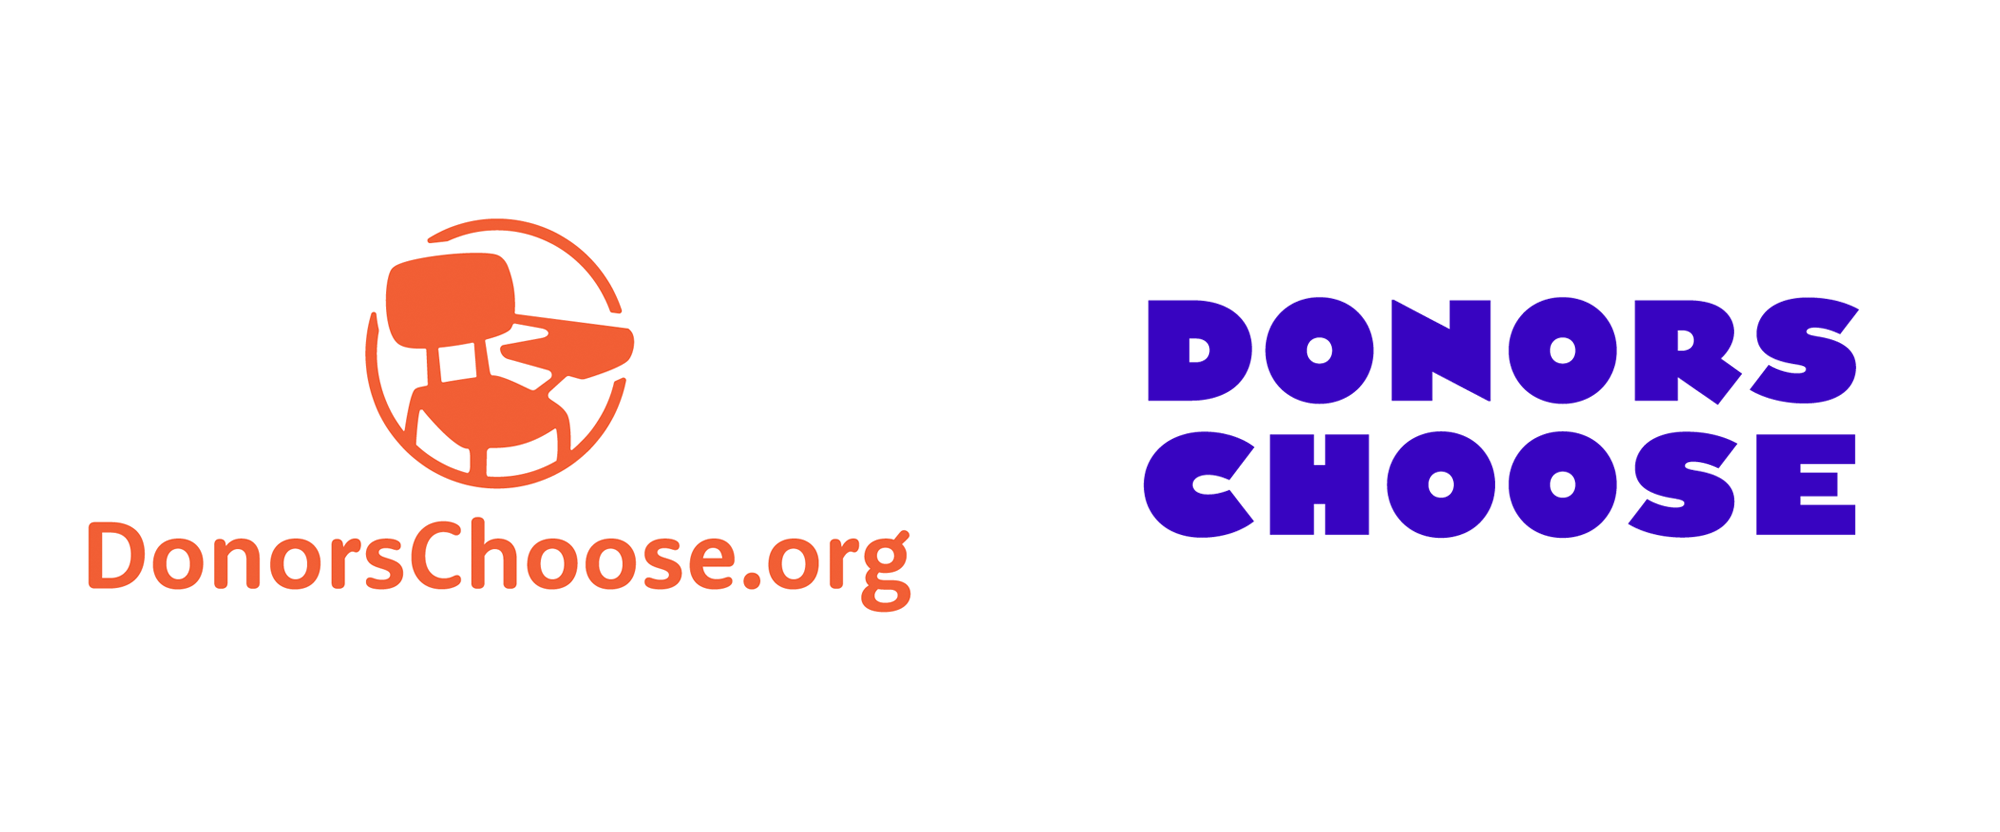 New Logo and Identity for DonorsChoose by Hyperakt